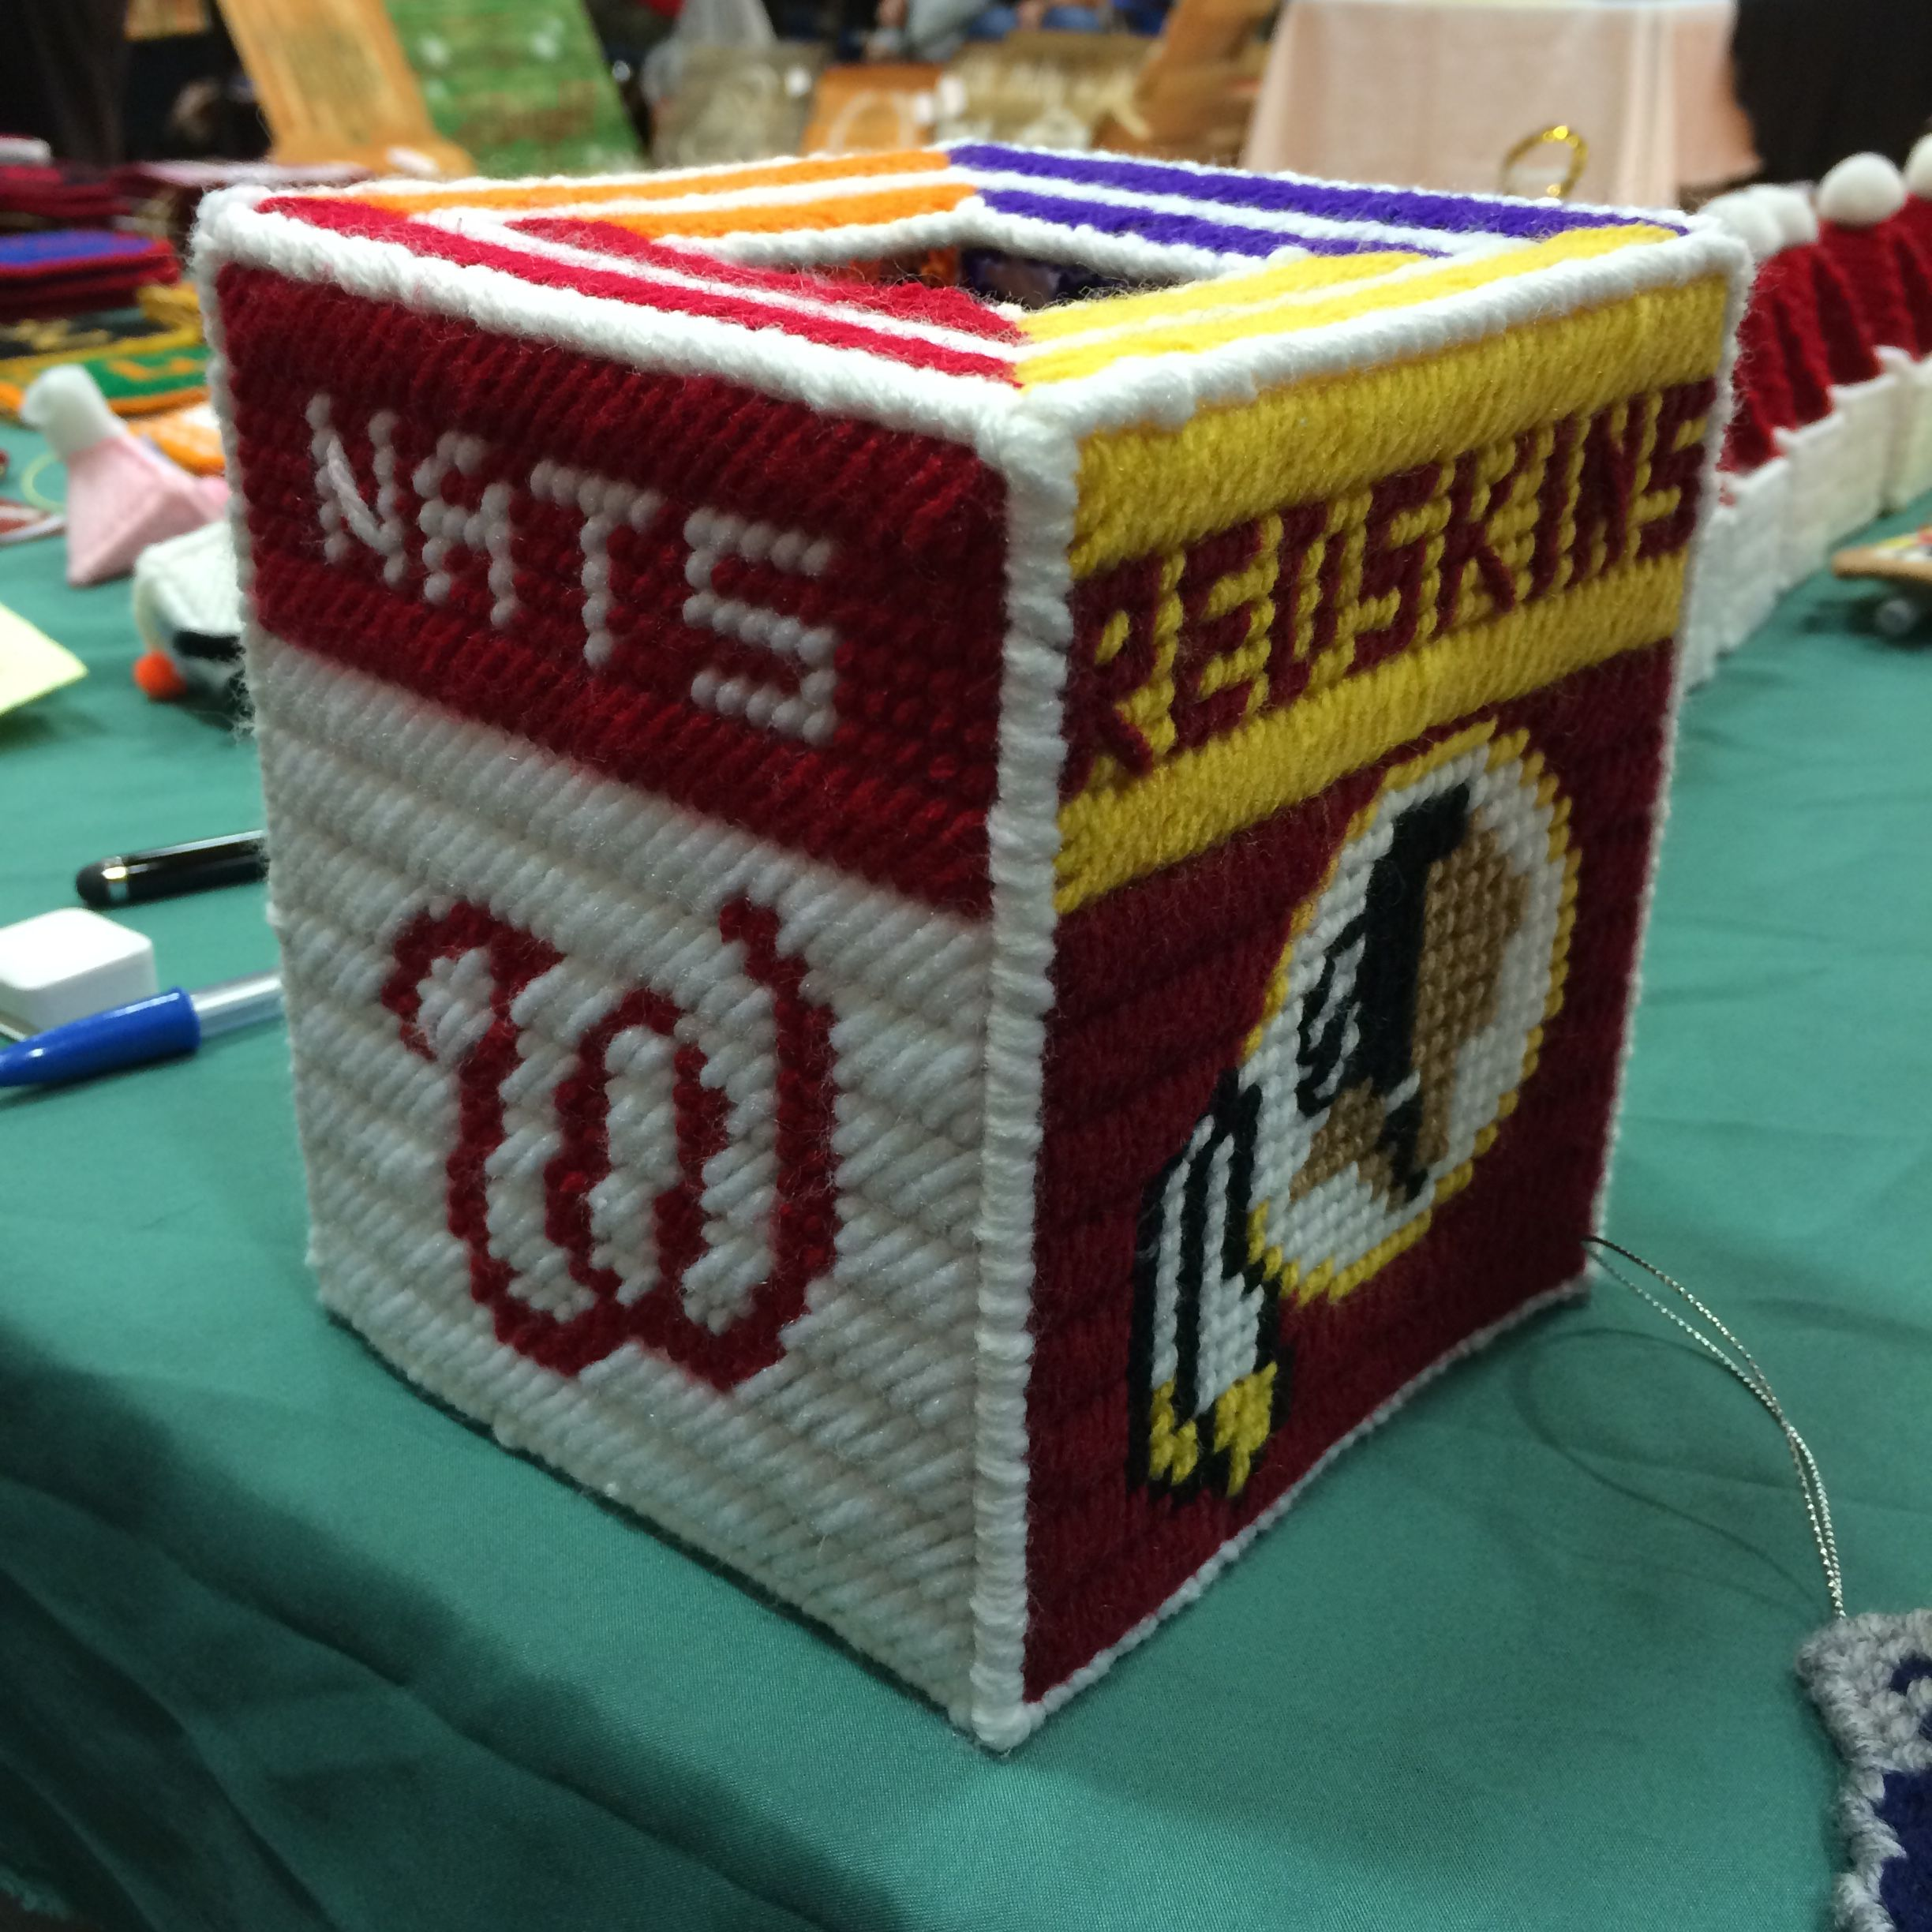 Washington Redskins and Washington Nationals combined with Orioles and Ravens